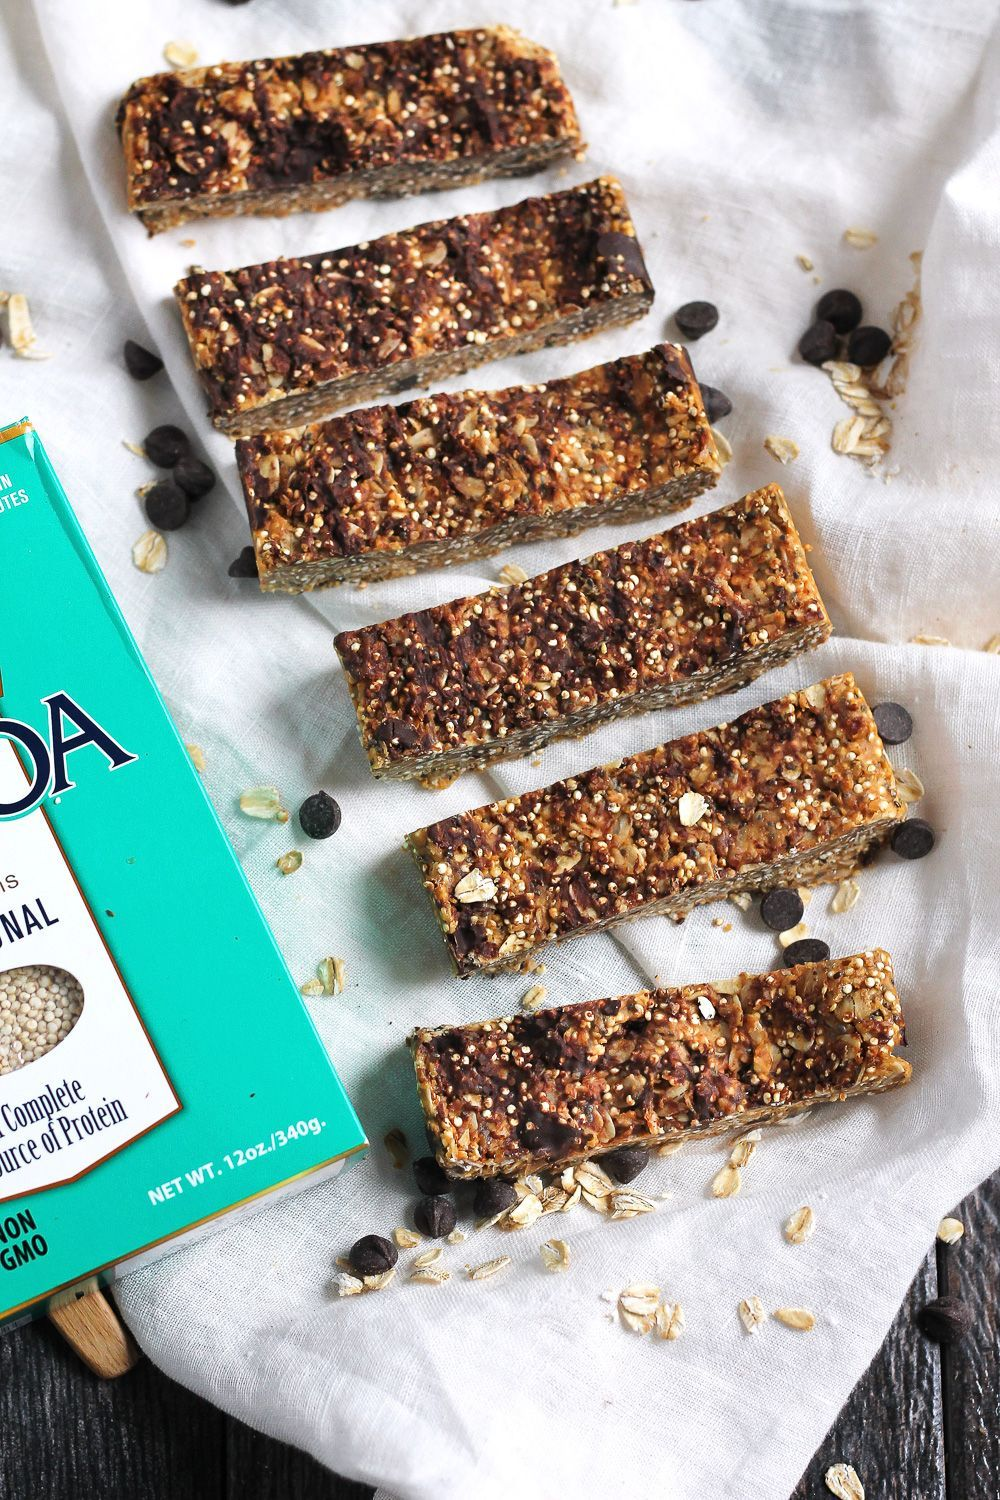 Peanut Butter Quinoa Granola Bars Almost no-bake quinoa granola bars with simple, natural ingredients. Only require a few ingredients and so easy to make! FREEZER FRIENDLY!Almost no-bake quinoa granola bars with simple, natural ingredients. Only require a few ingredients and so easy to make! FREEZER FRIENDLY!